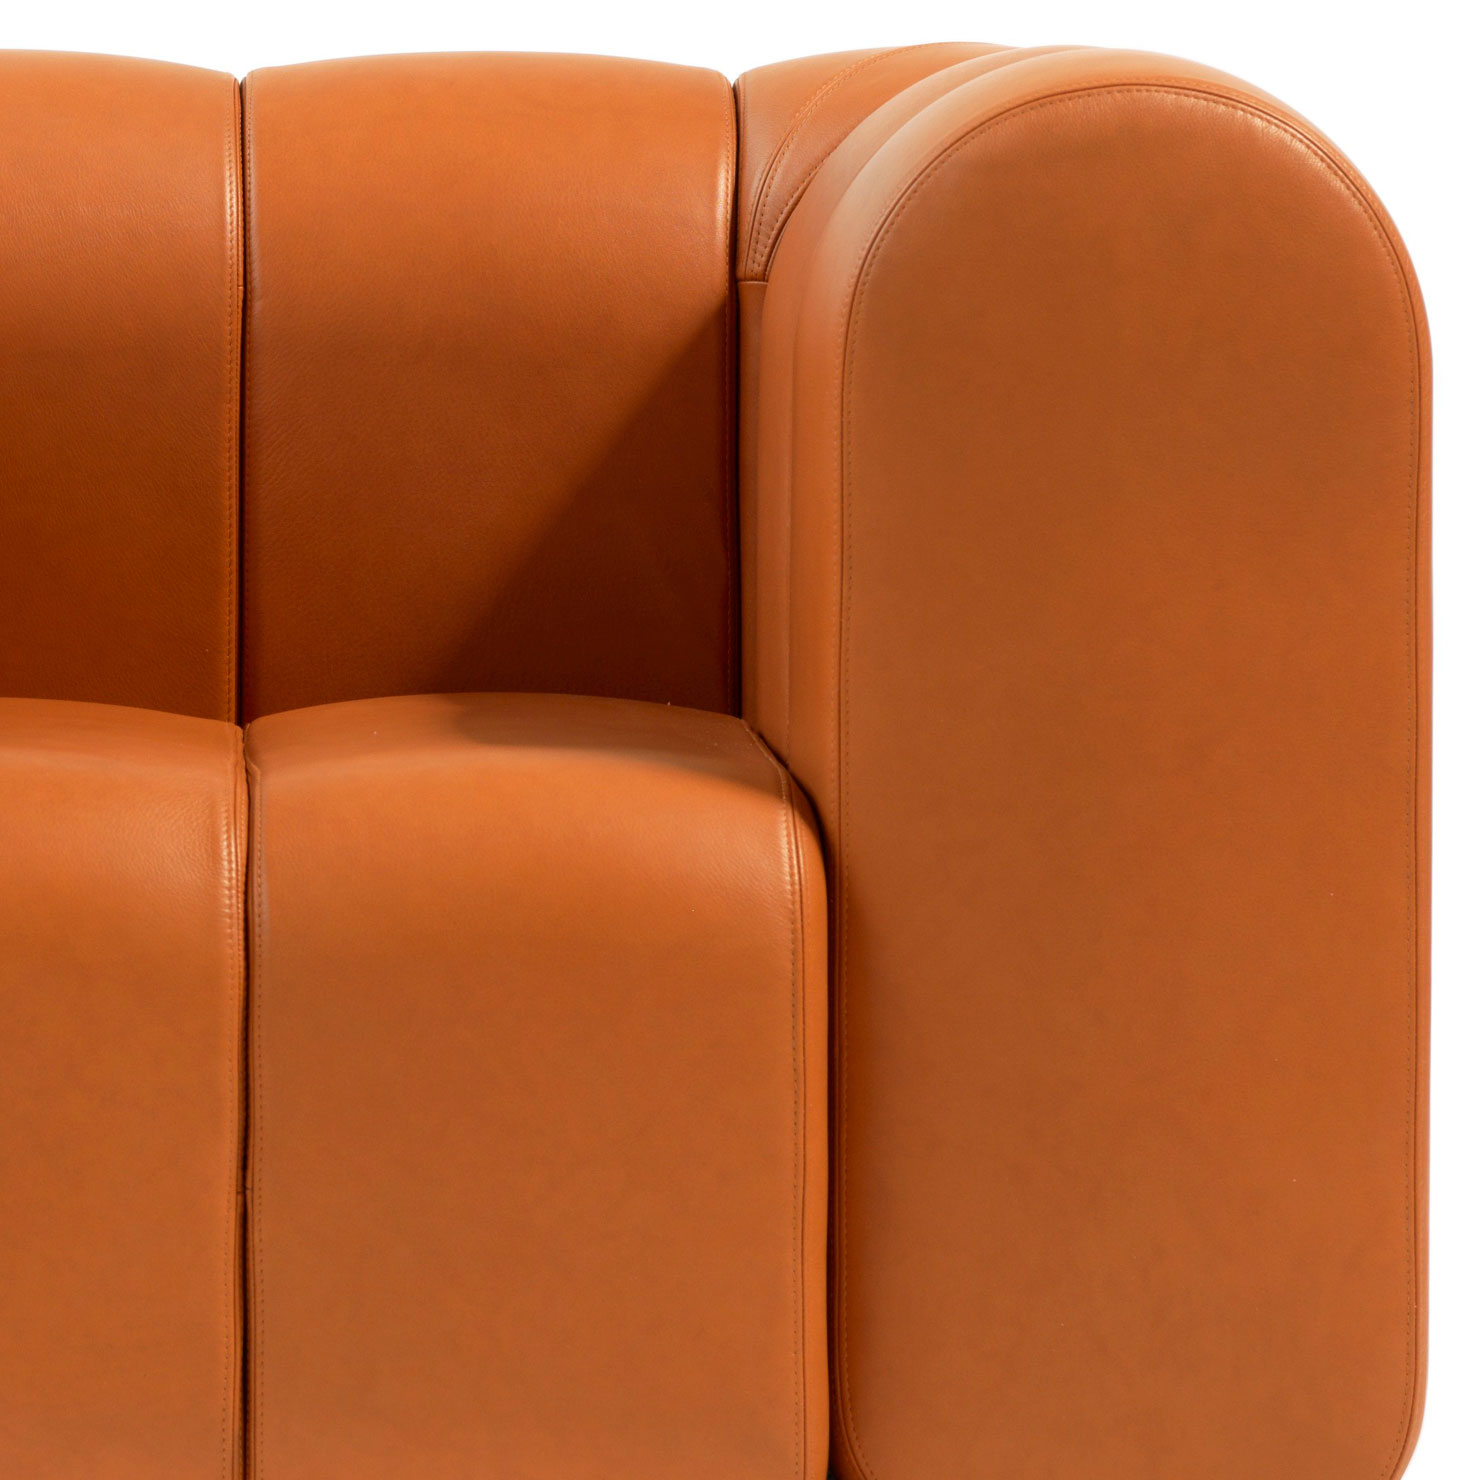 BOB |Easy Chair, Leather